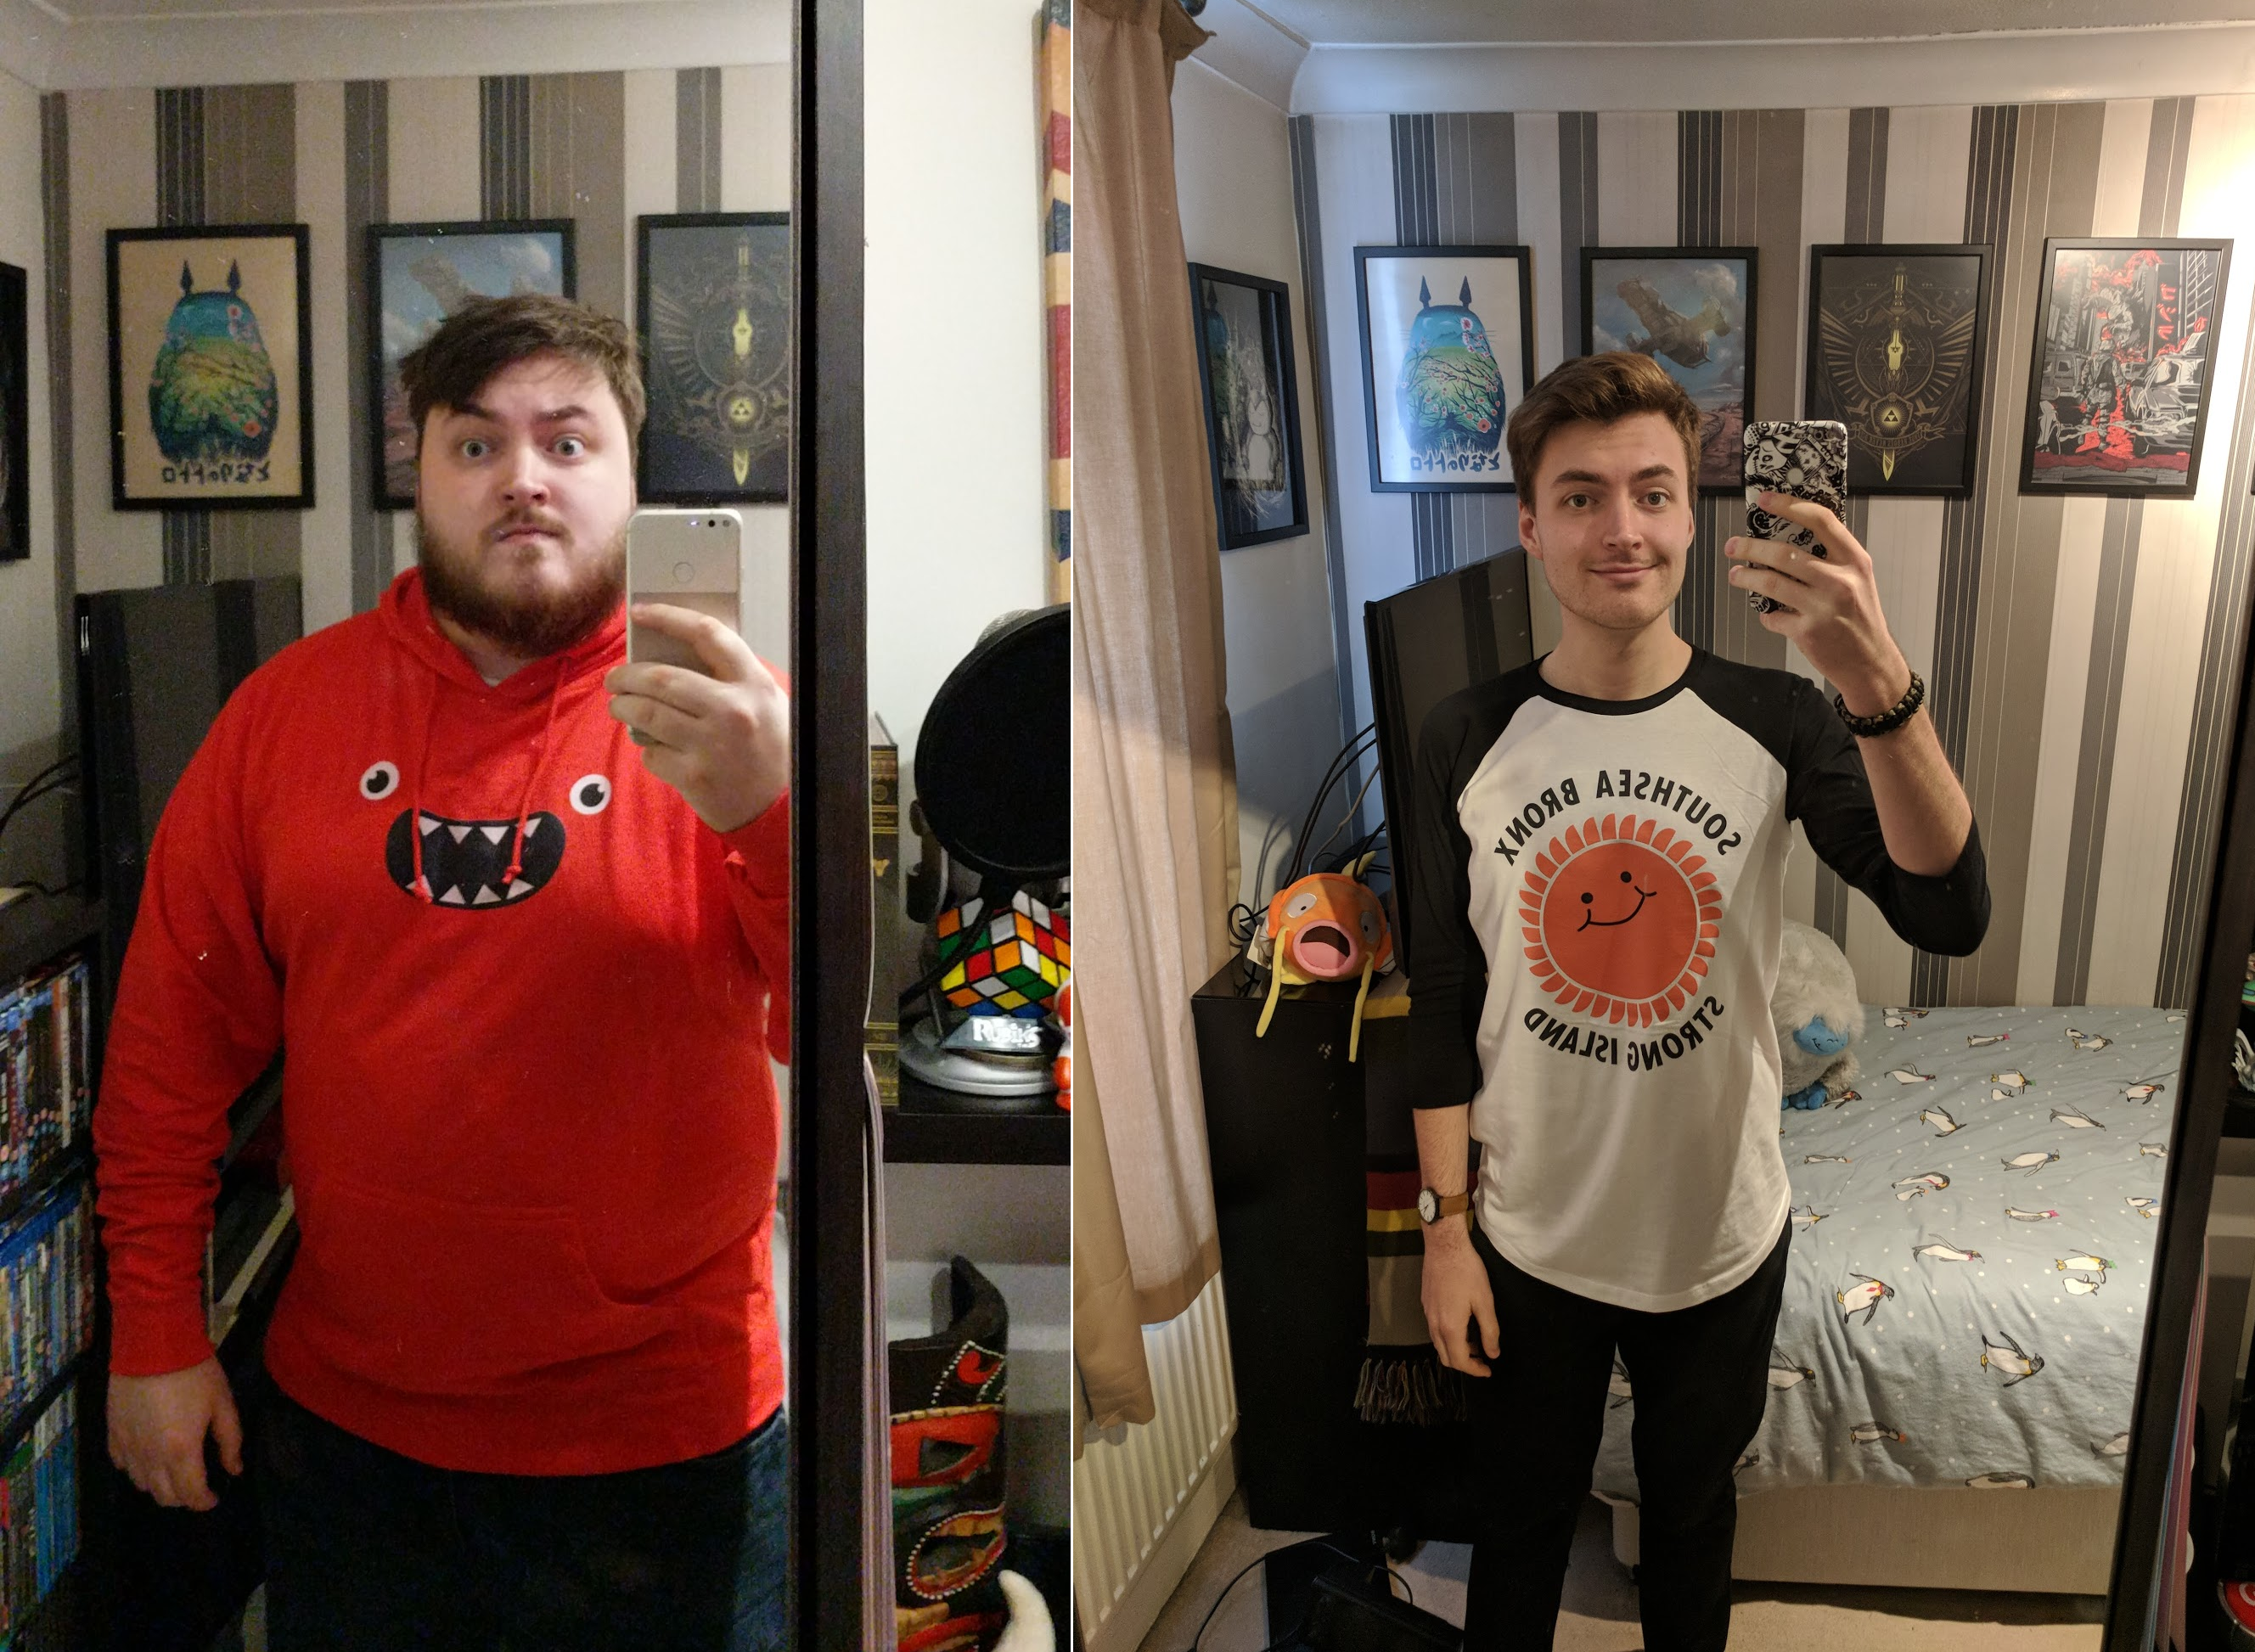 6'2 Male Before and After 160 lbs Fat Loss 332 lbs to 172 lbs